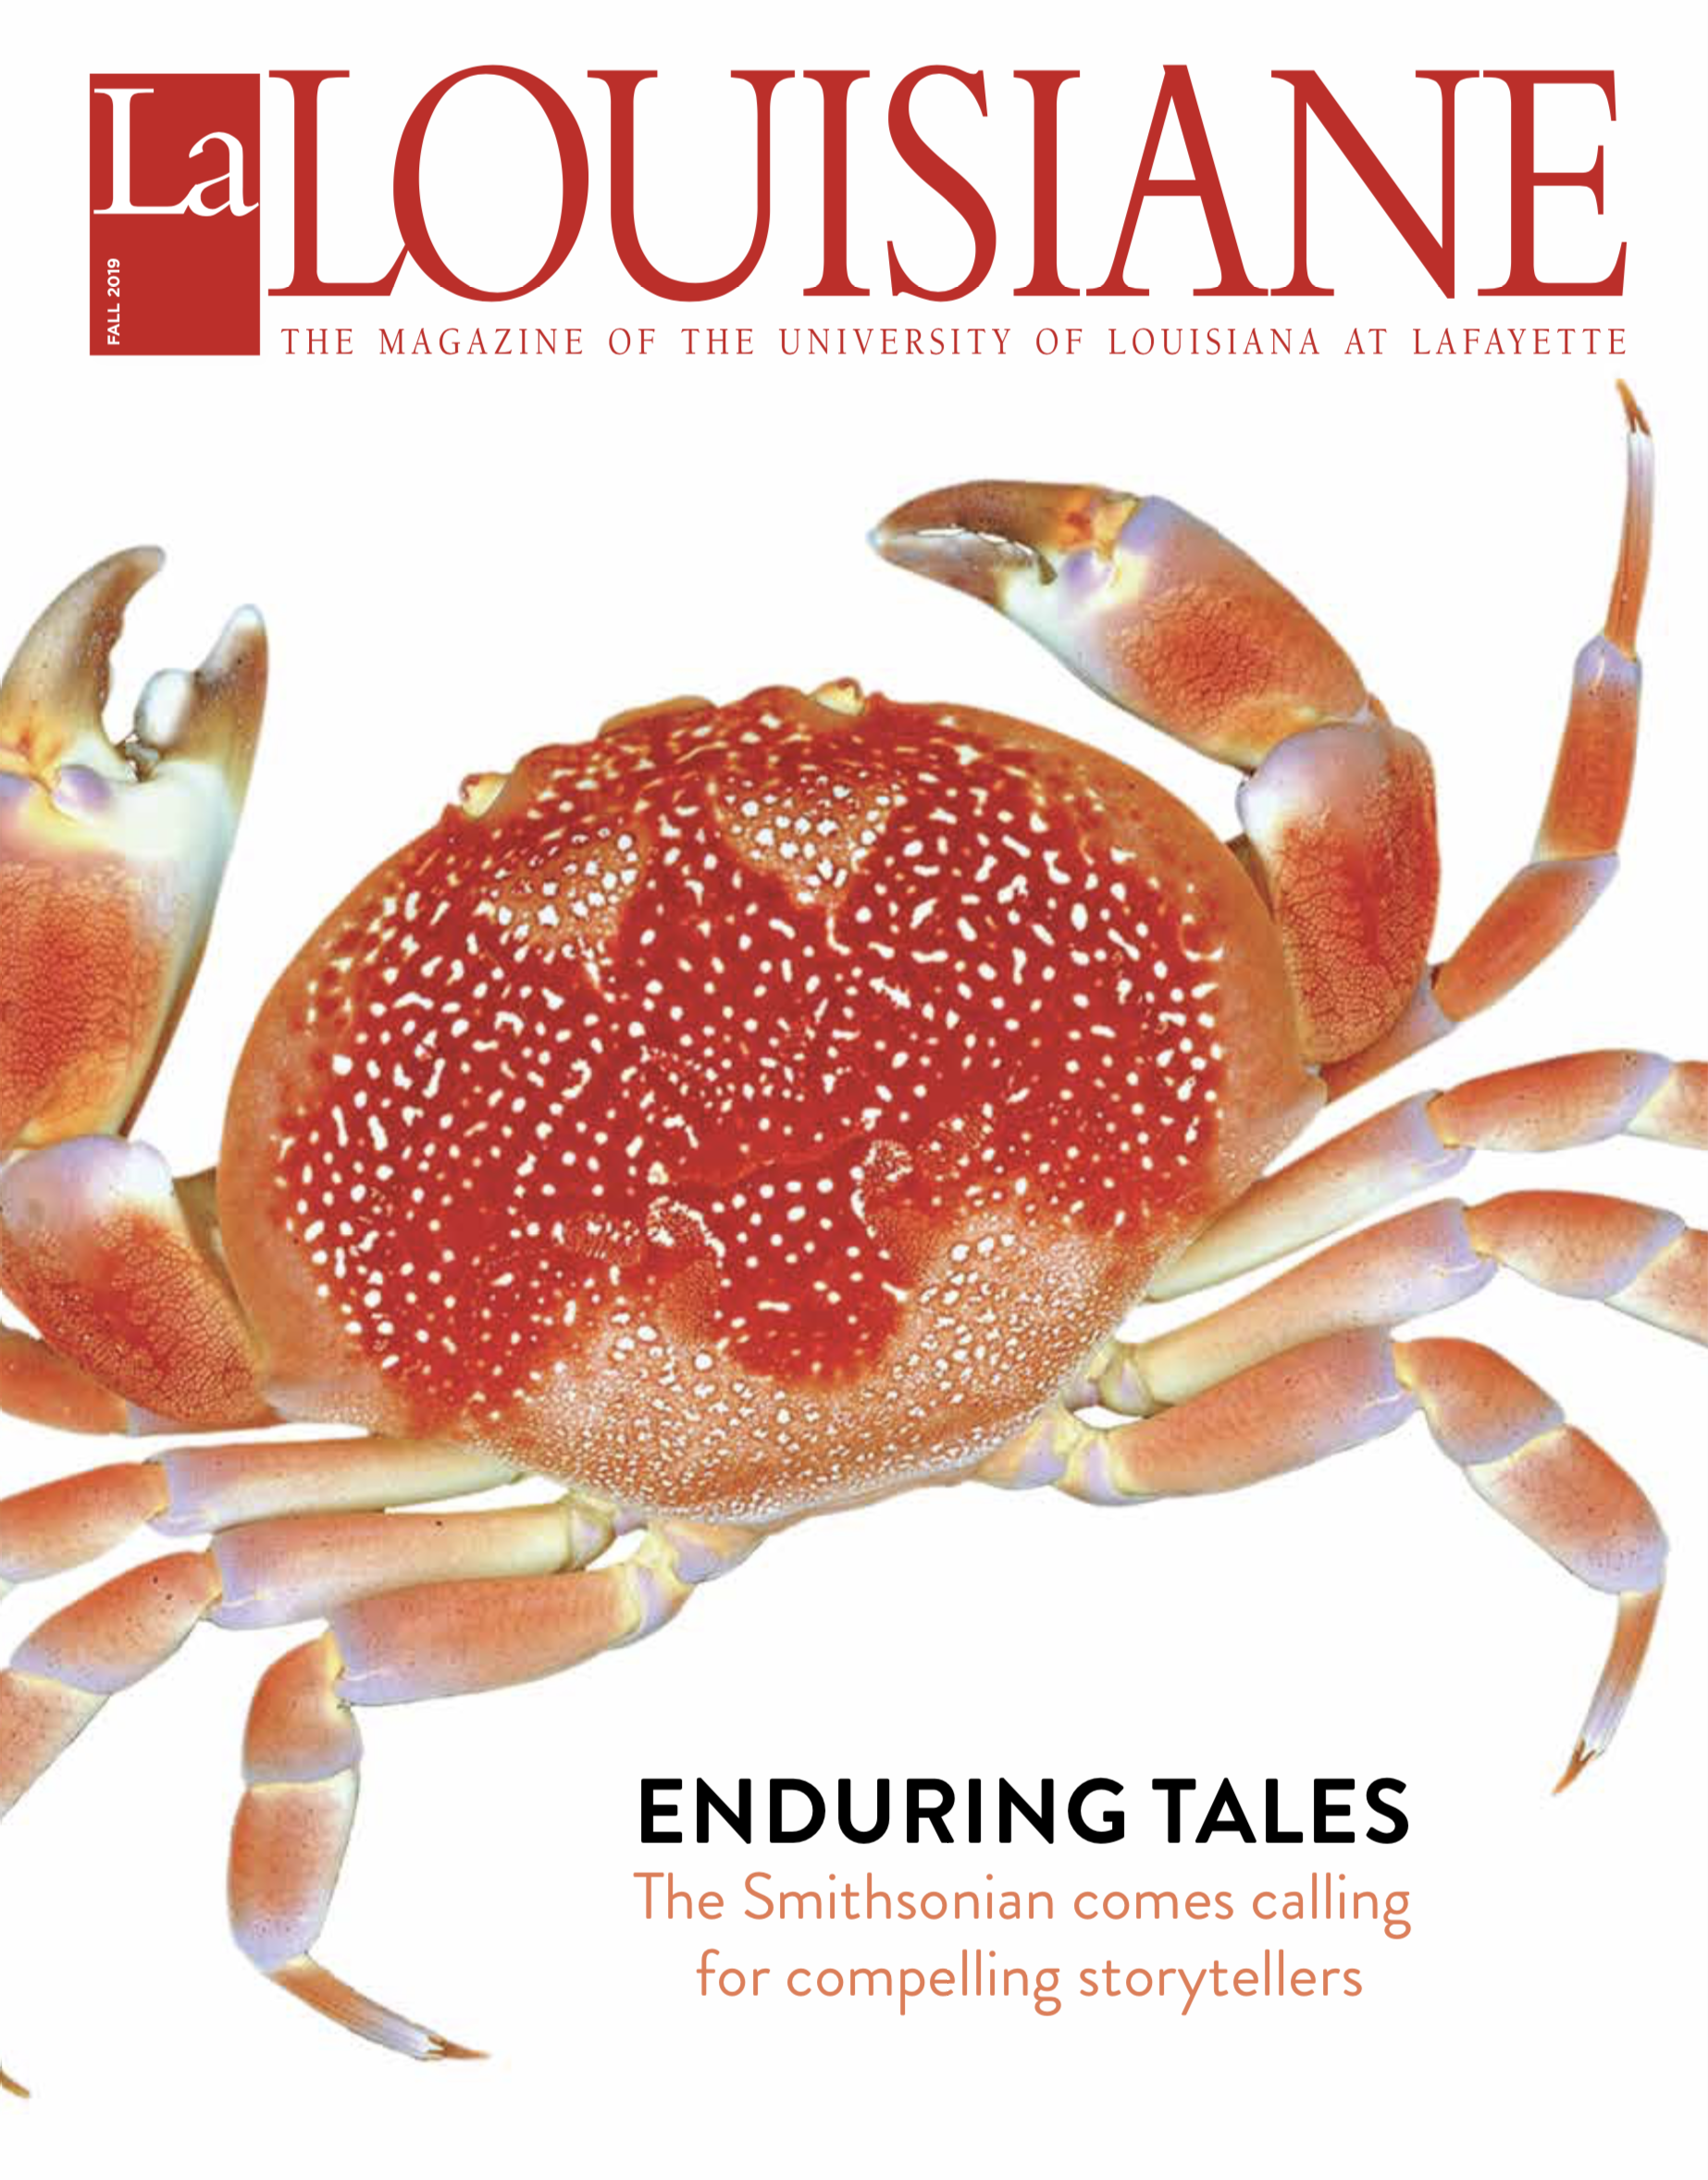 Cover of La Louisiane fall 2019 with a large red and orange crab